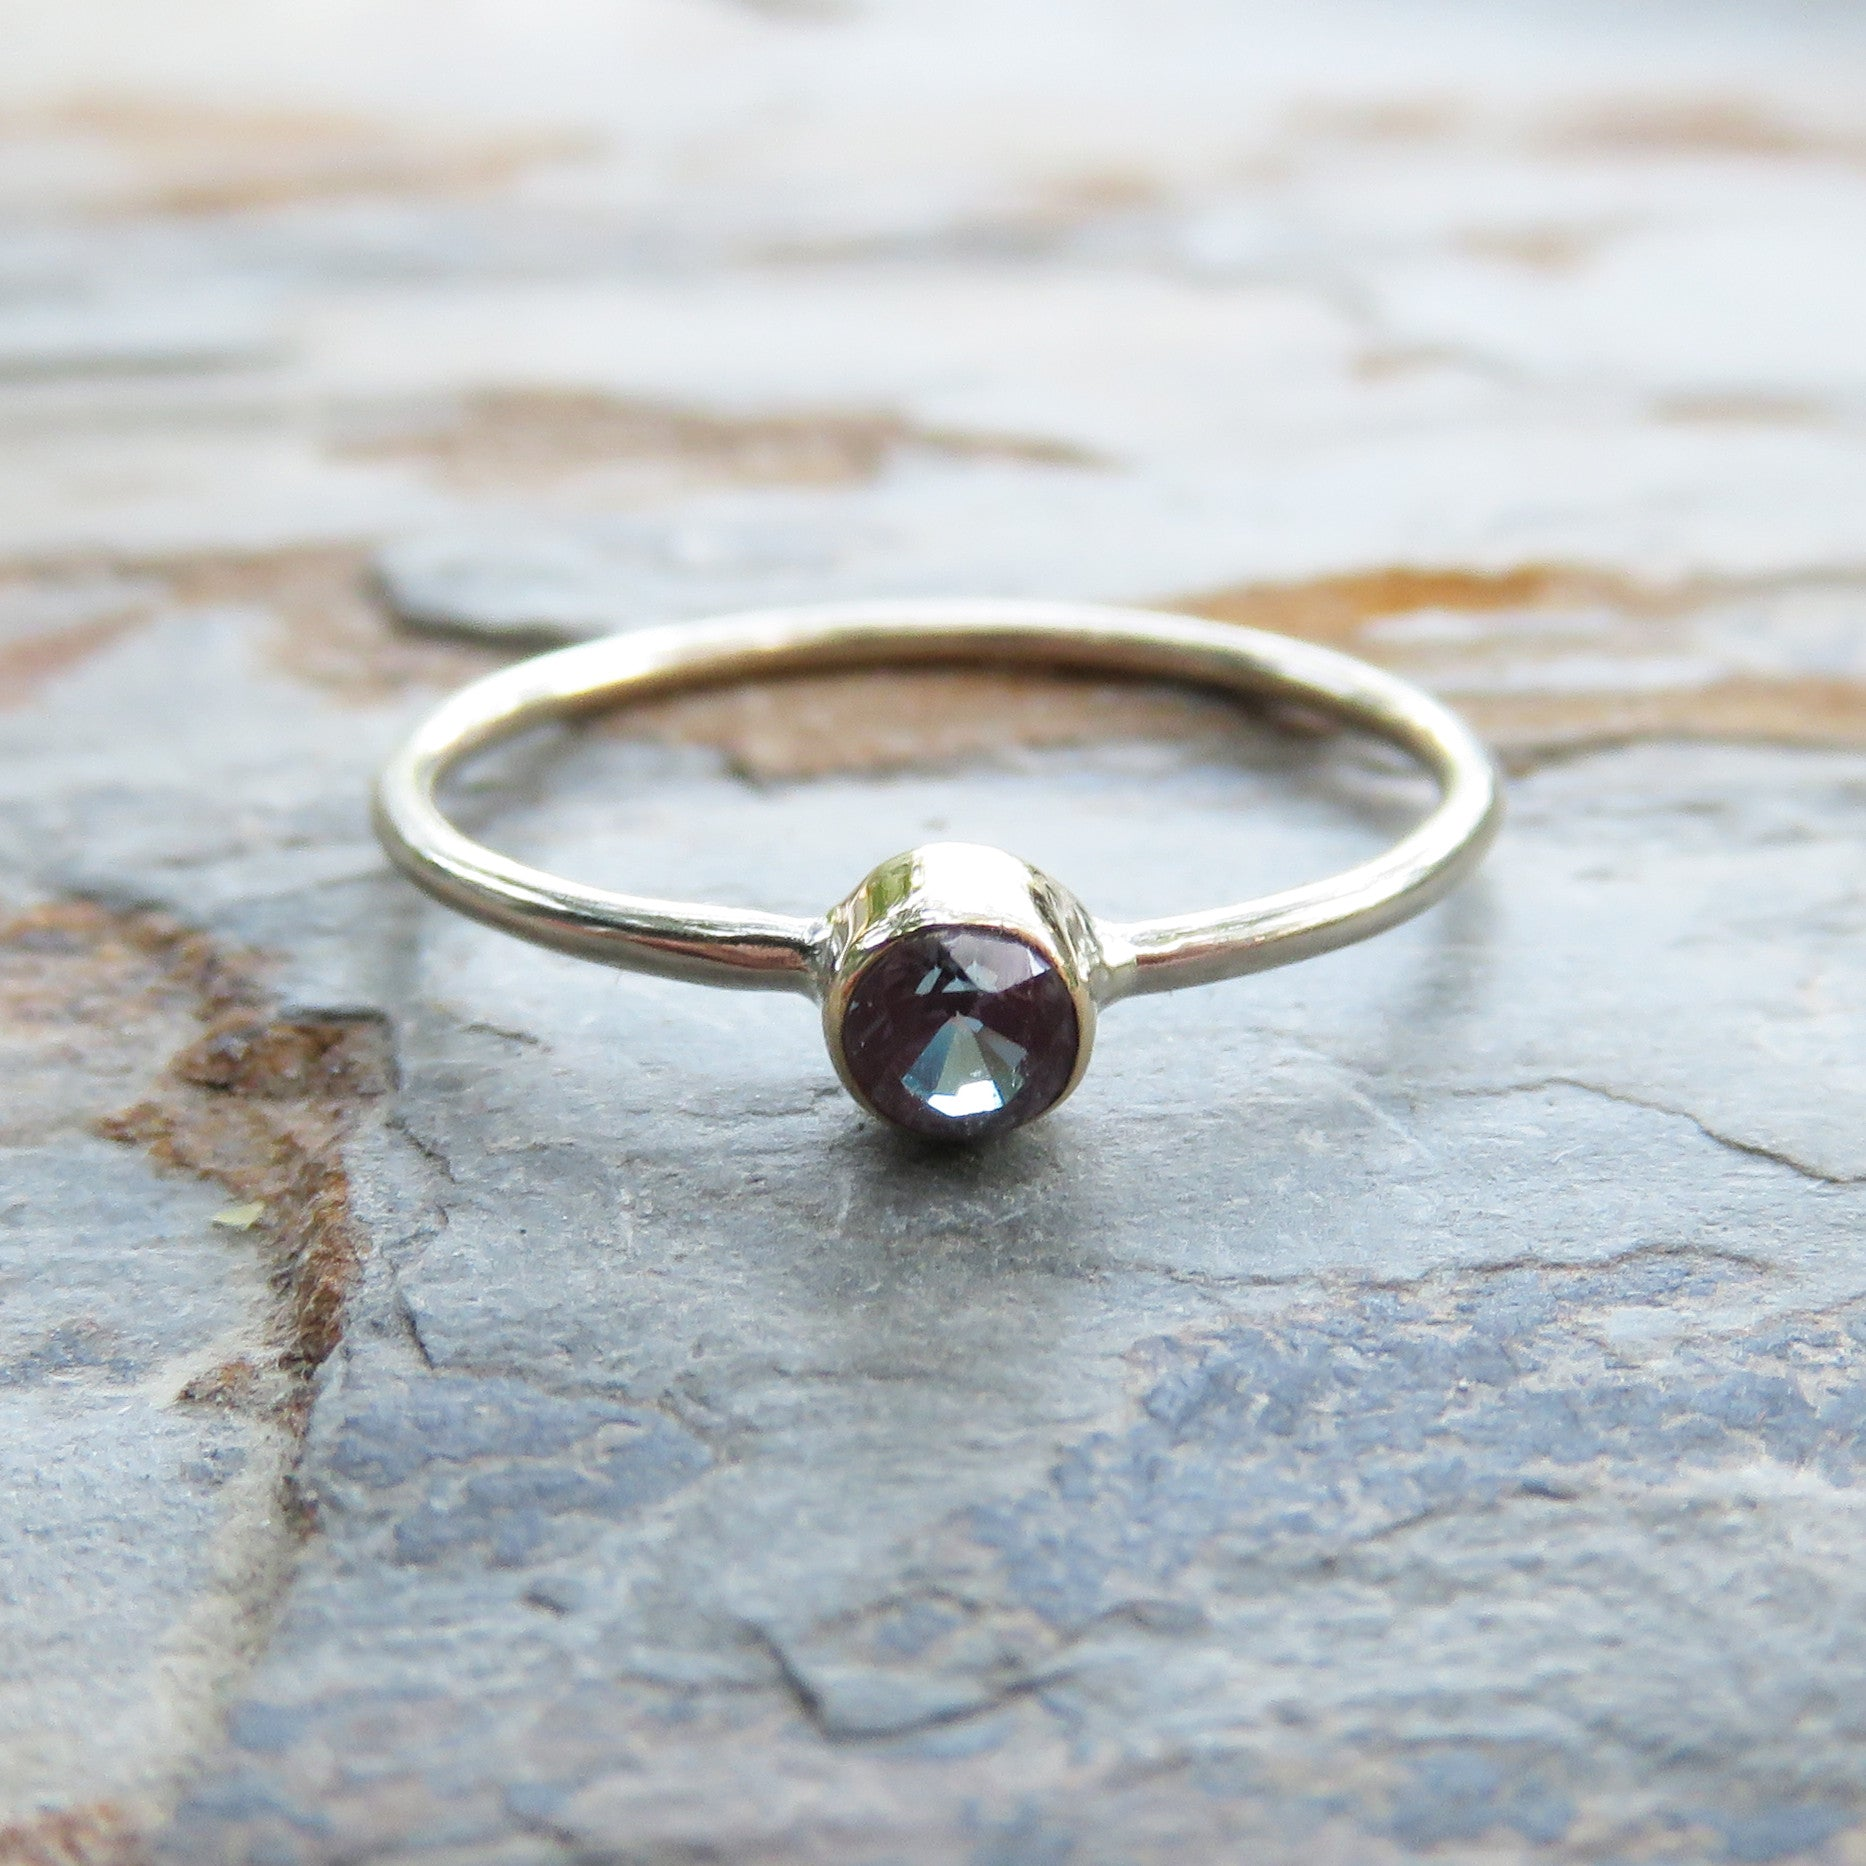 rings jewellery sterling under sterlingsilver june set wedding producttype tresor pound silver alexandrite hundred for paris birthstone with crystals pave ring filter crystal metaltype colour